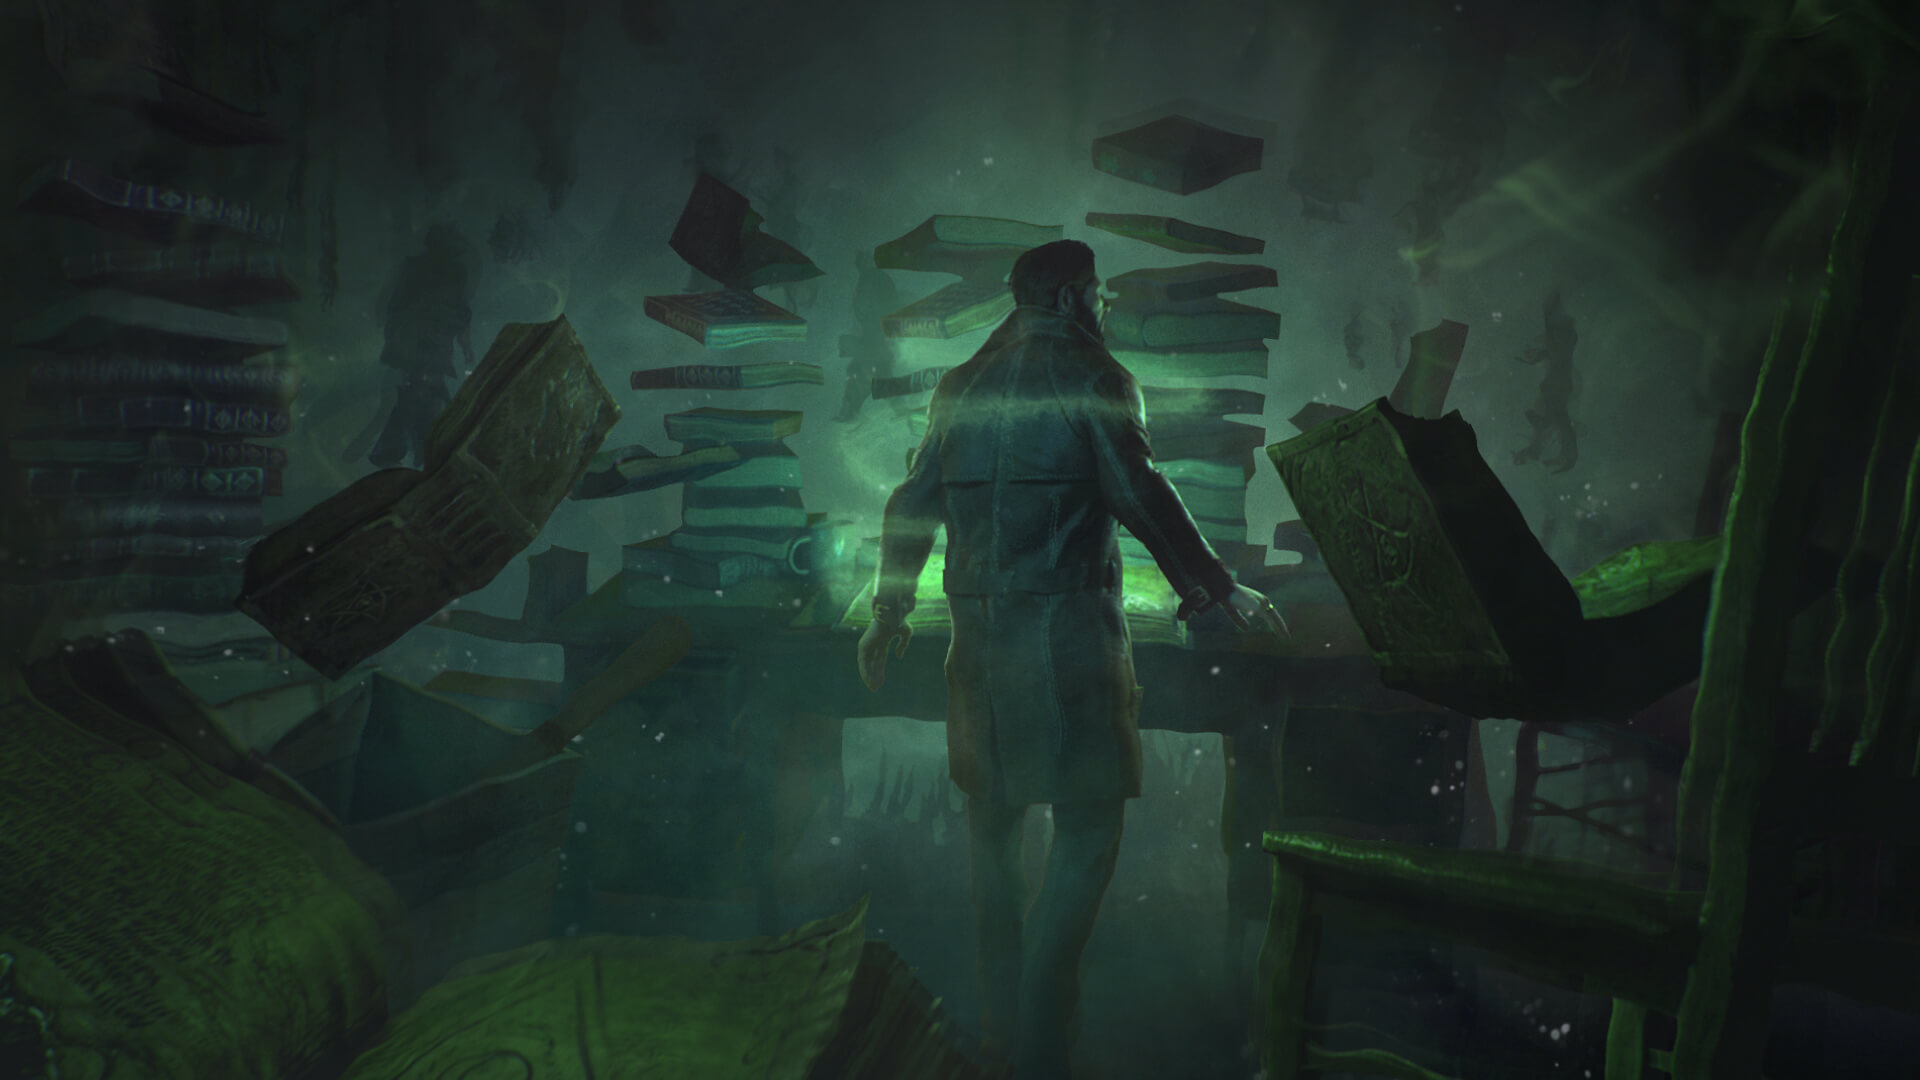 Call of Cthulhu review: Sea green